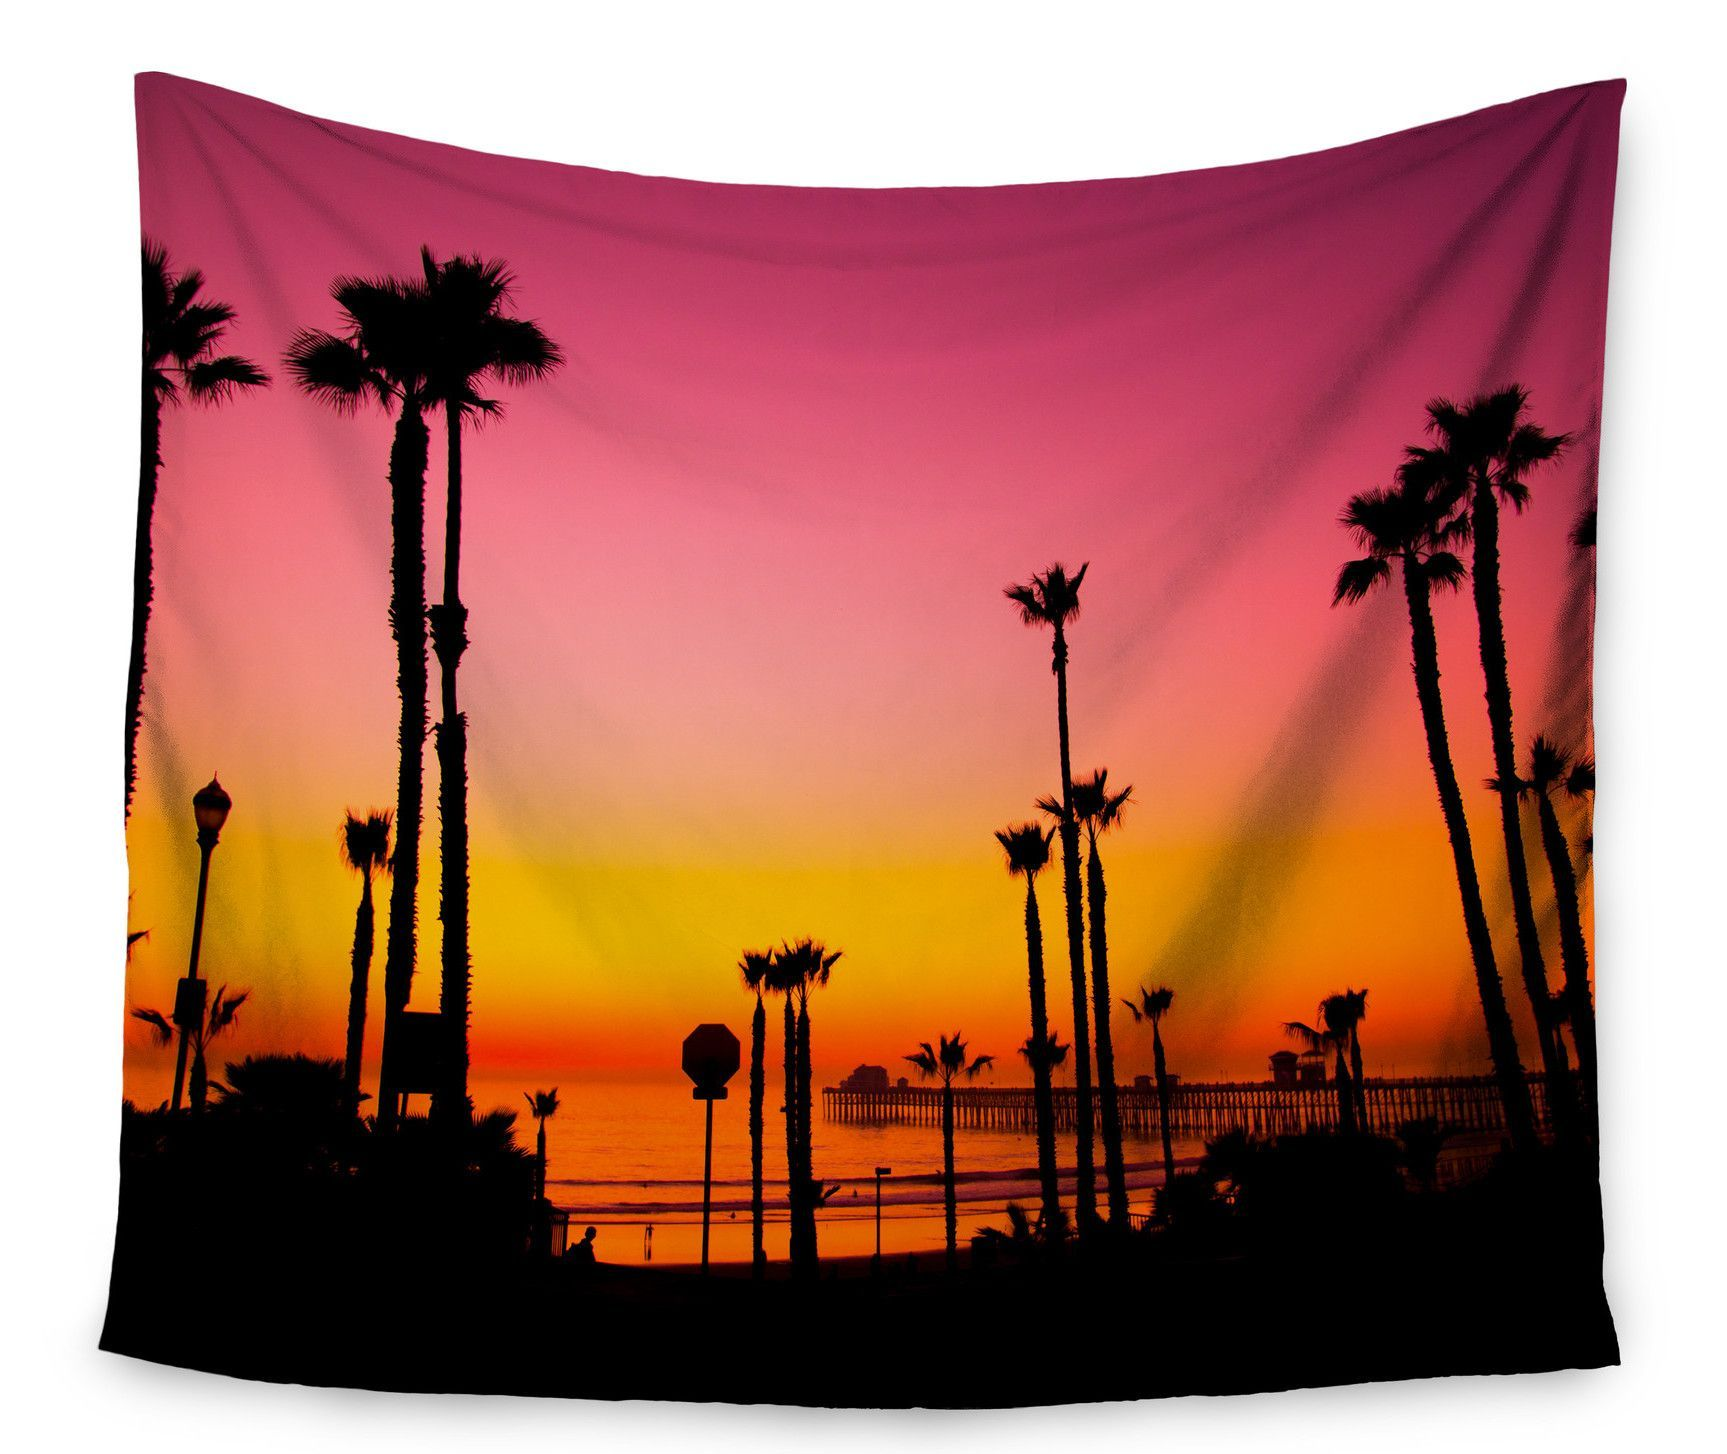 Pacific Dream by Juan Paolo Wall Tapestry